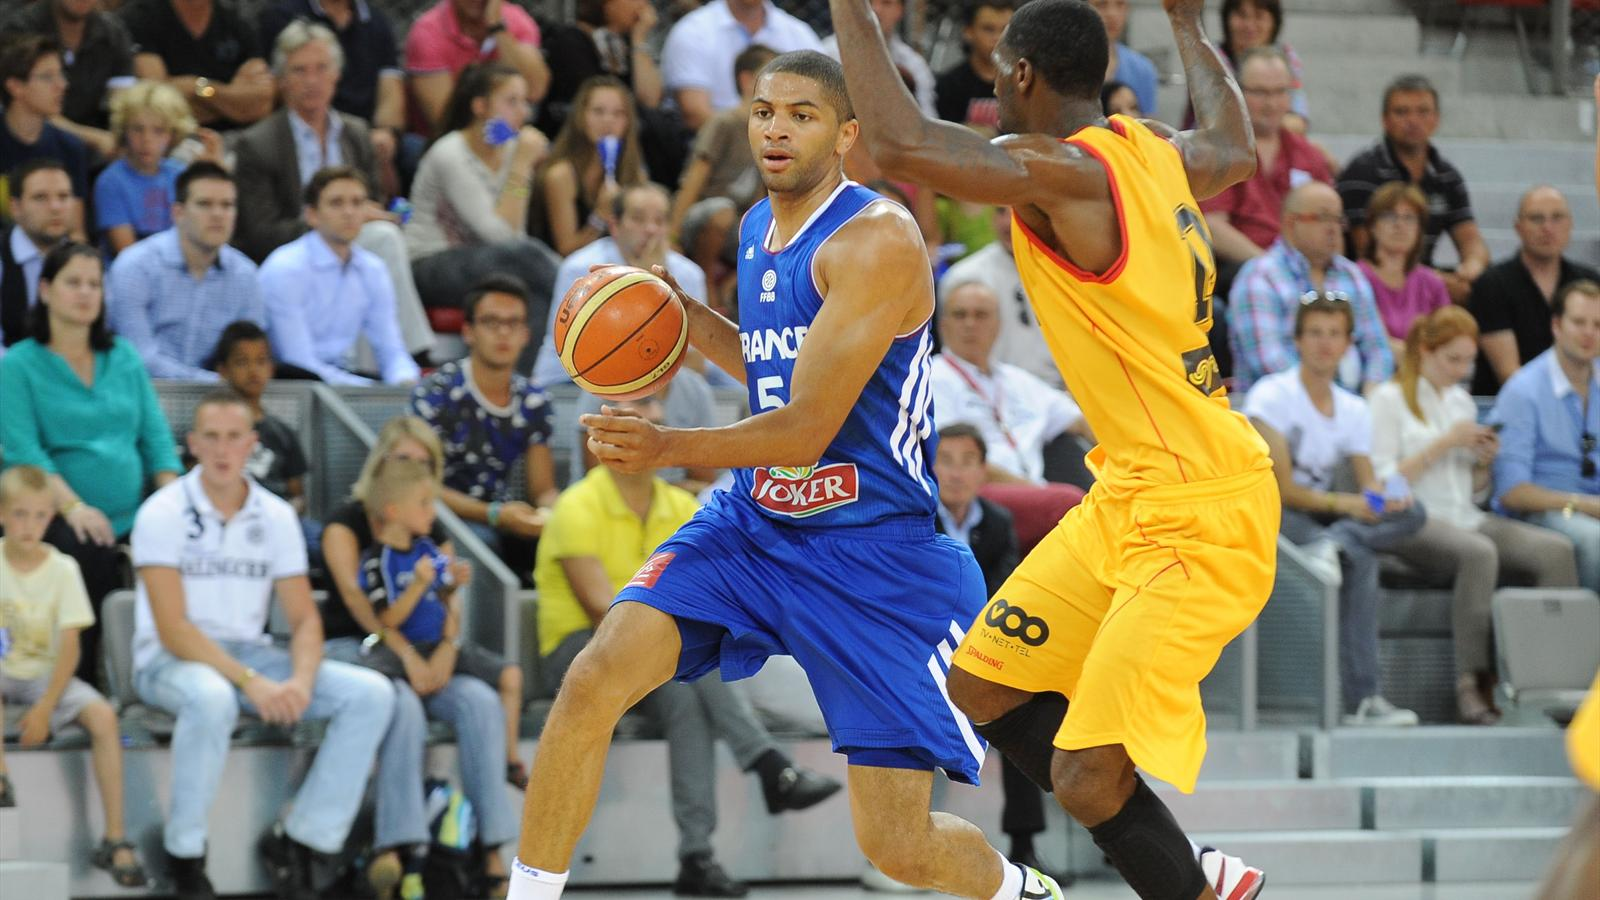 Match basketball France vs Lituanie en direct live streaming